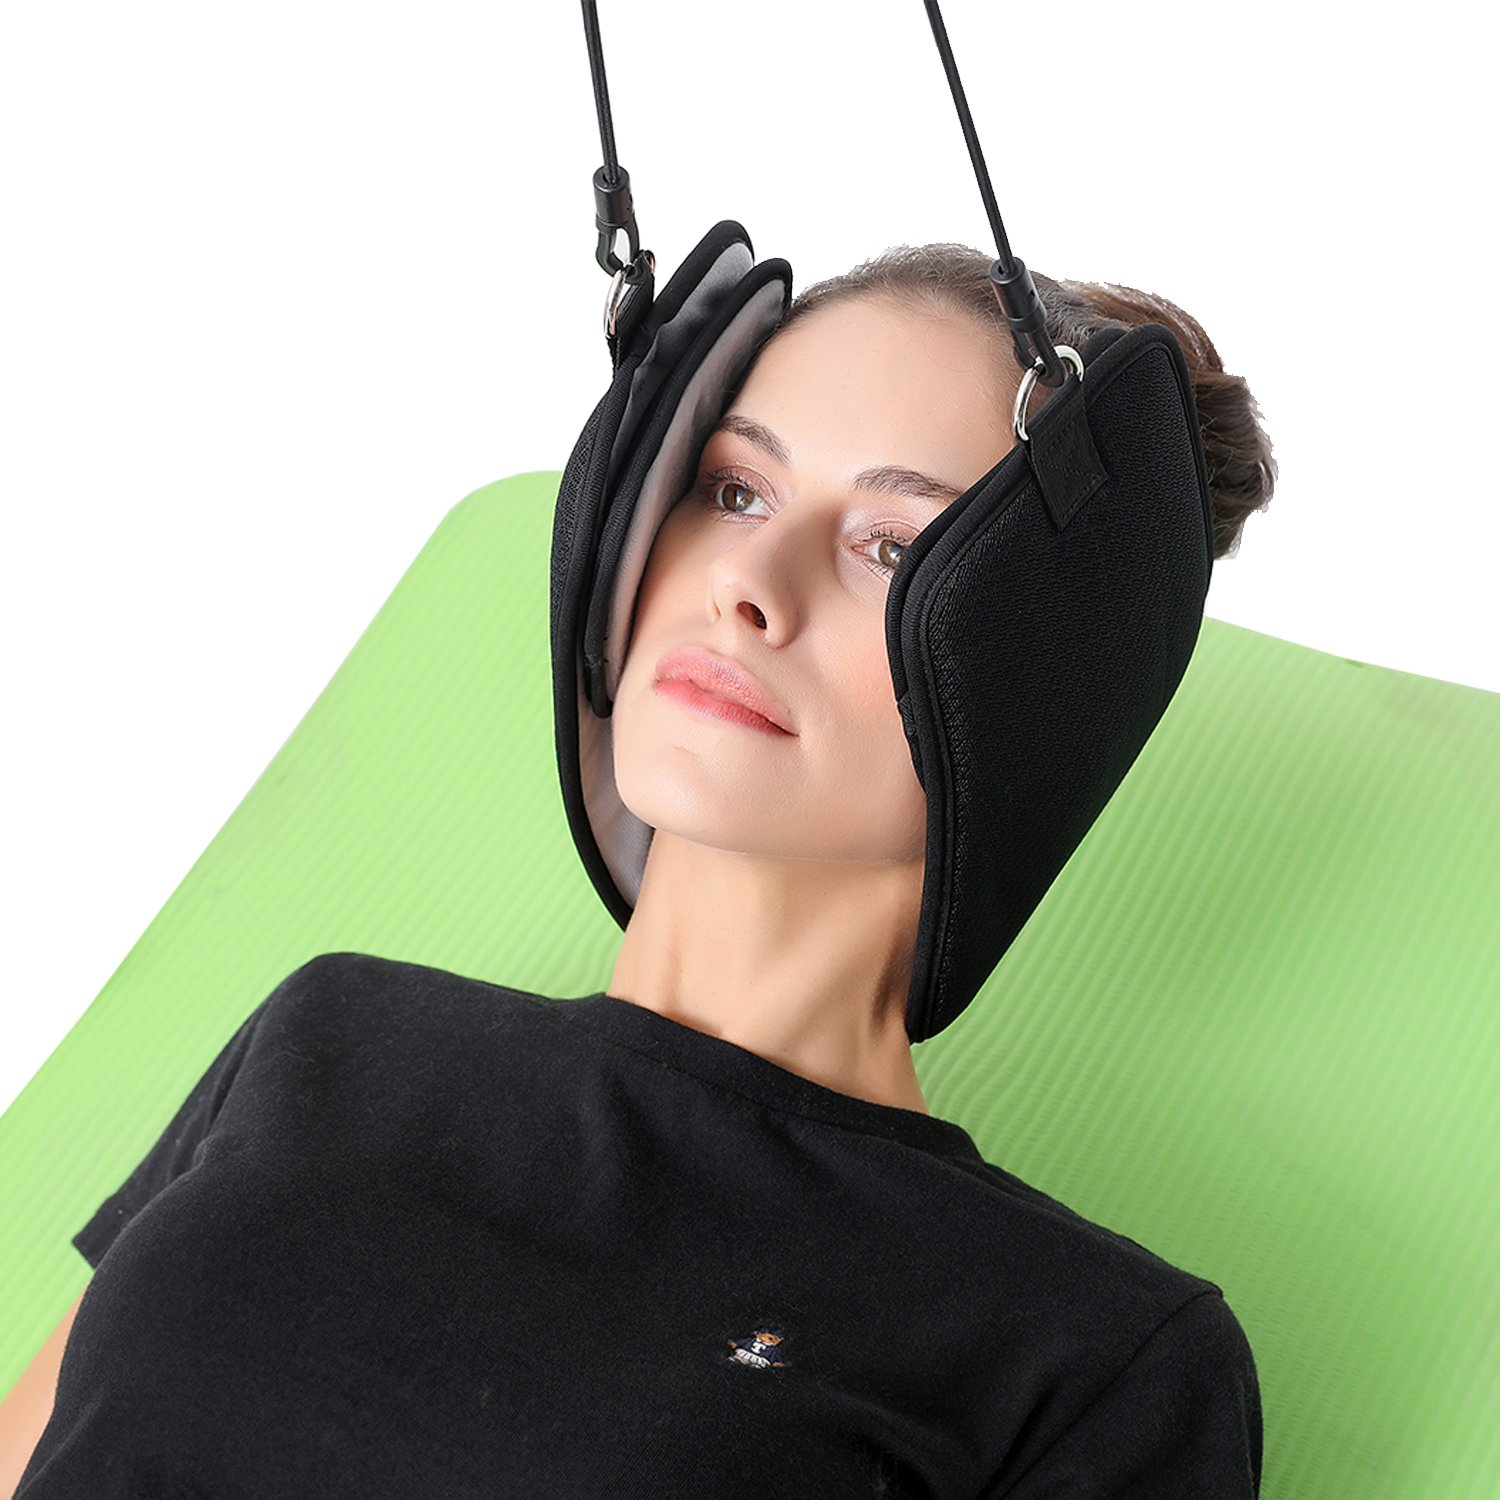 Hammock for Neck - Portable Neck and Shoulder Pain Relief Cervical Traction Device - Adjustable Relax Neck Massager Attach to Door Or Railing